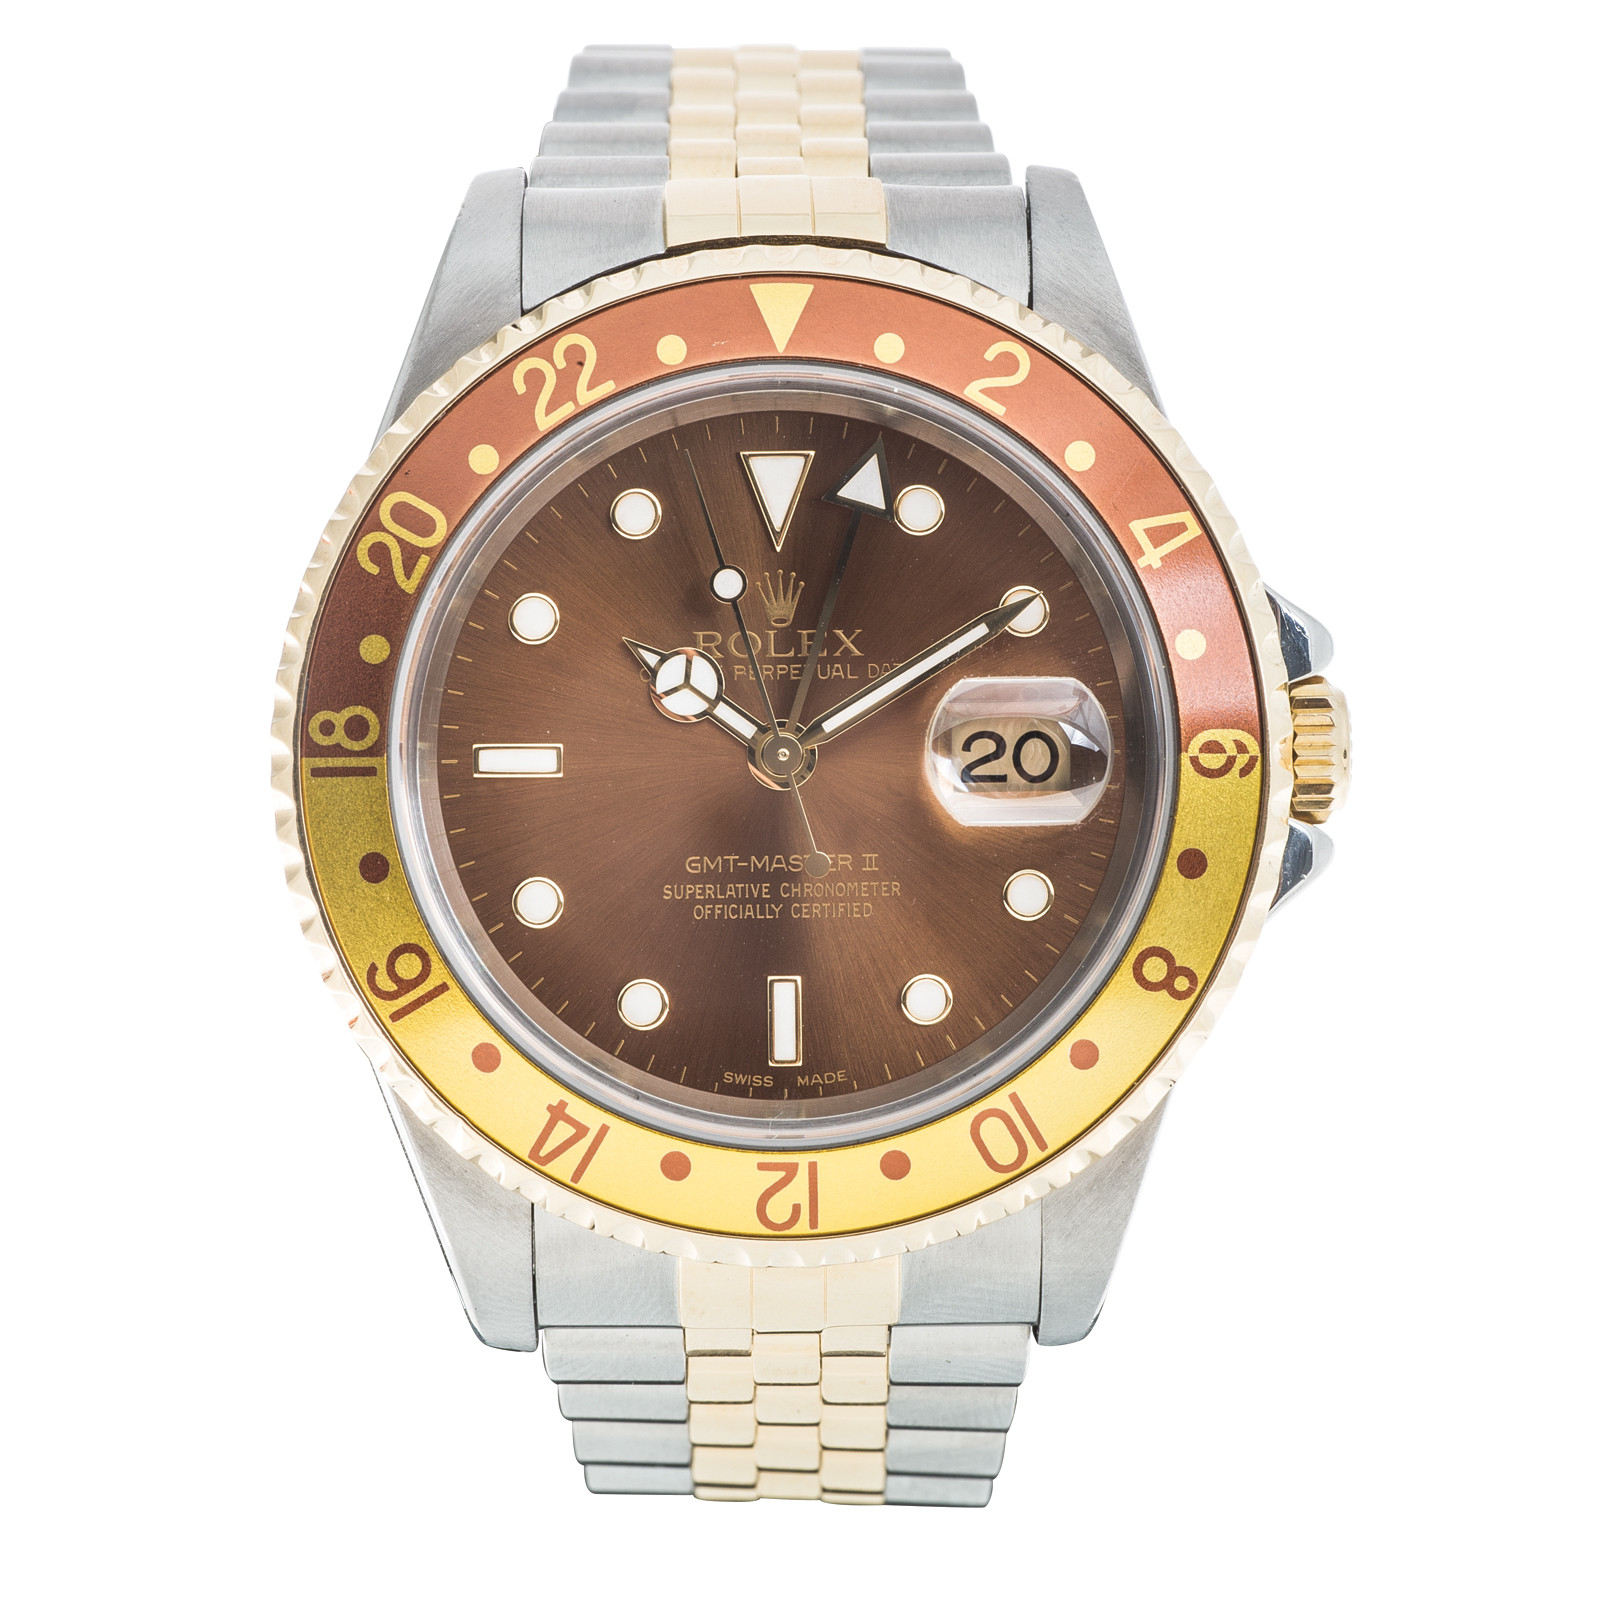 Preowned Rolex GMT-Master